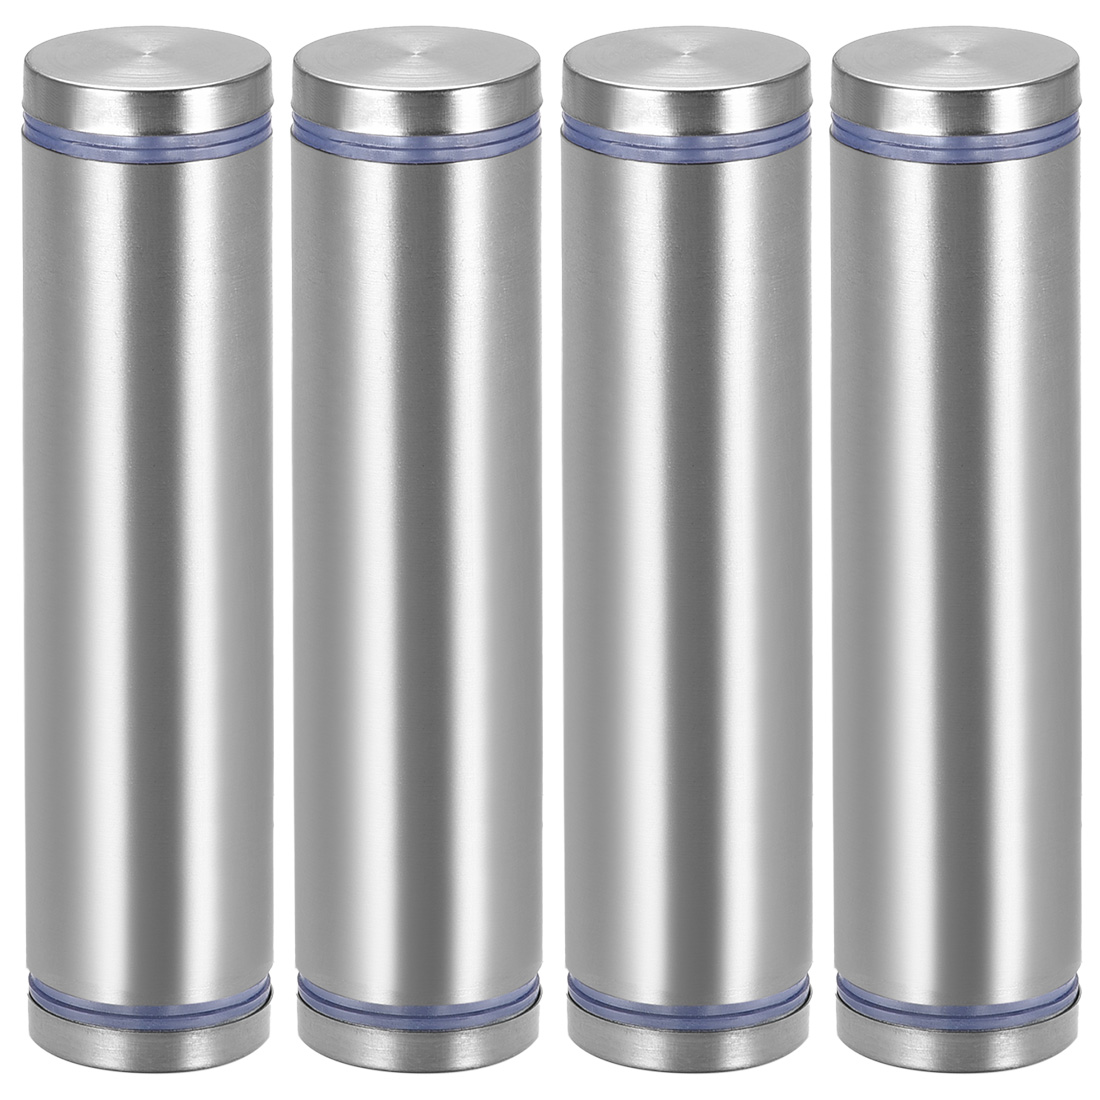 Glass Standoff Double Head Stainless Steel Standoff Holder 25mm x 105mm 4 Pcs